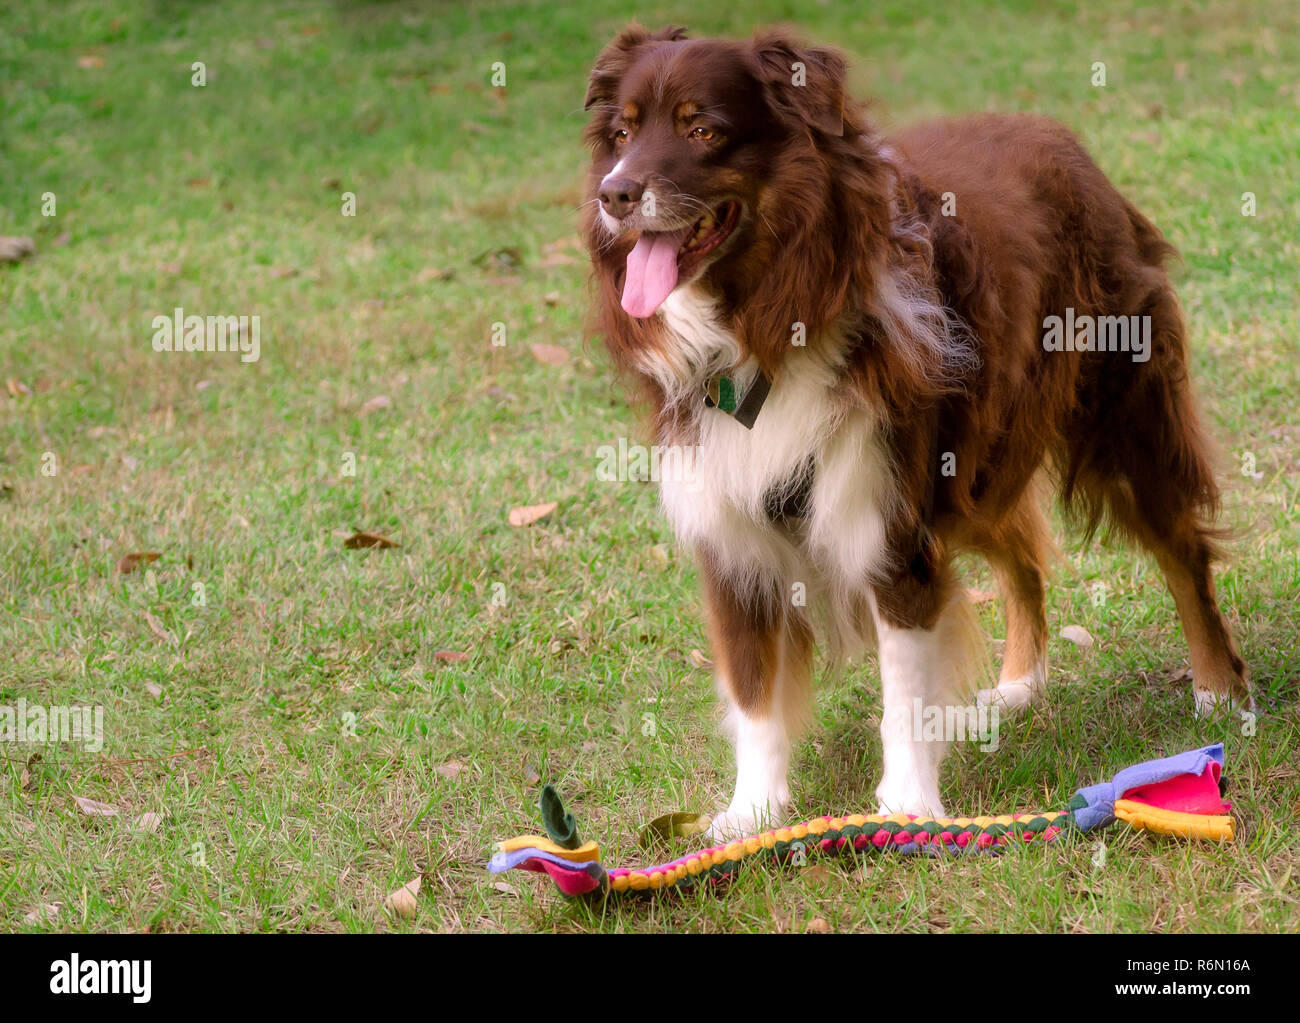 Cowboy, a red tri Australian Shepherd, stands with a braided tug toy, October 29, 2015, in Coden, Alabama. (Photo by Carmen K. Sisson/Cloudybright) - Stock Image